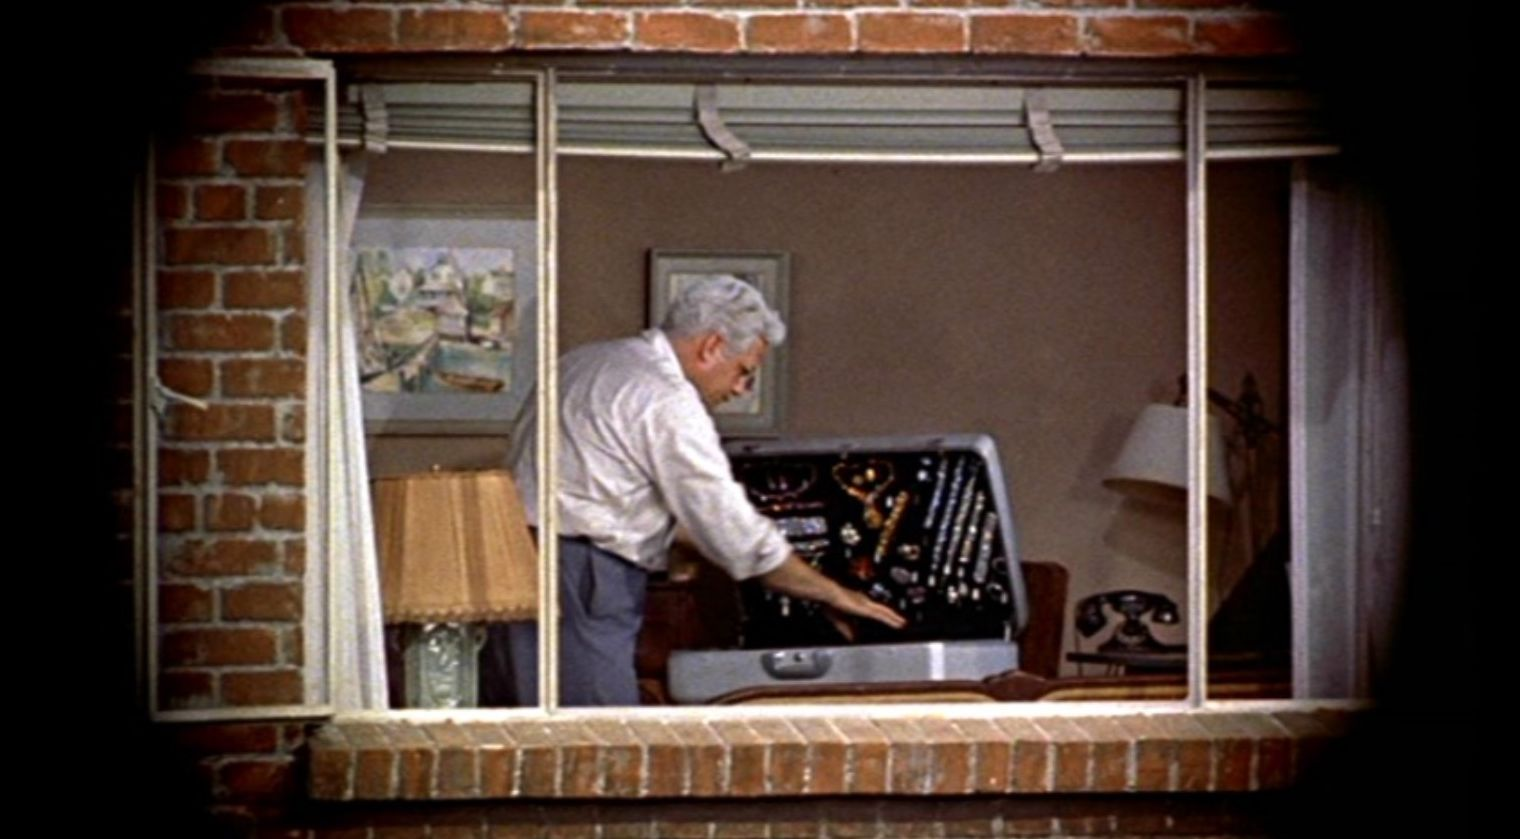 opening shot analysis of rear window In rear window hitchcock shows his common theme of women being the lower gender through the framing of his shots by engaging in a shot reverse shot sequence after the slow motion kiss demonstrating the higher status through the space around the characters.